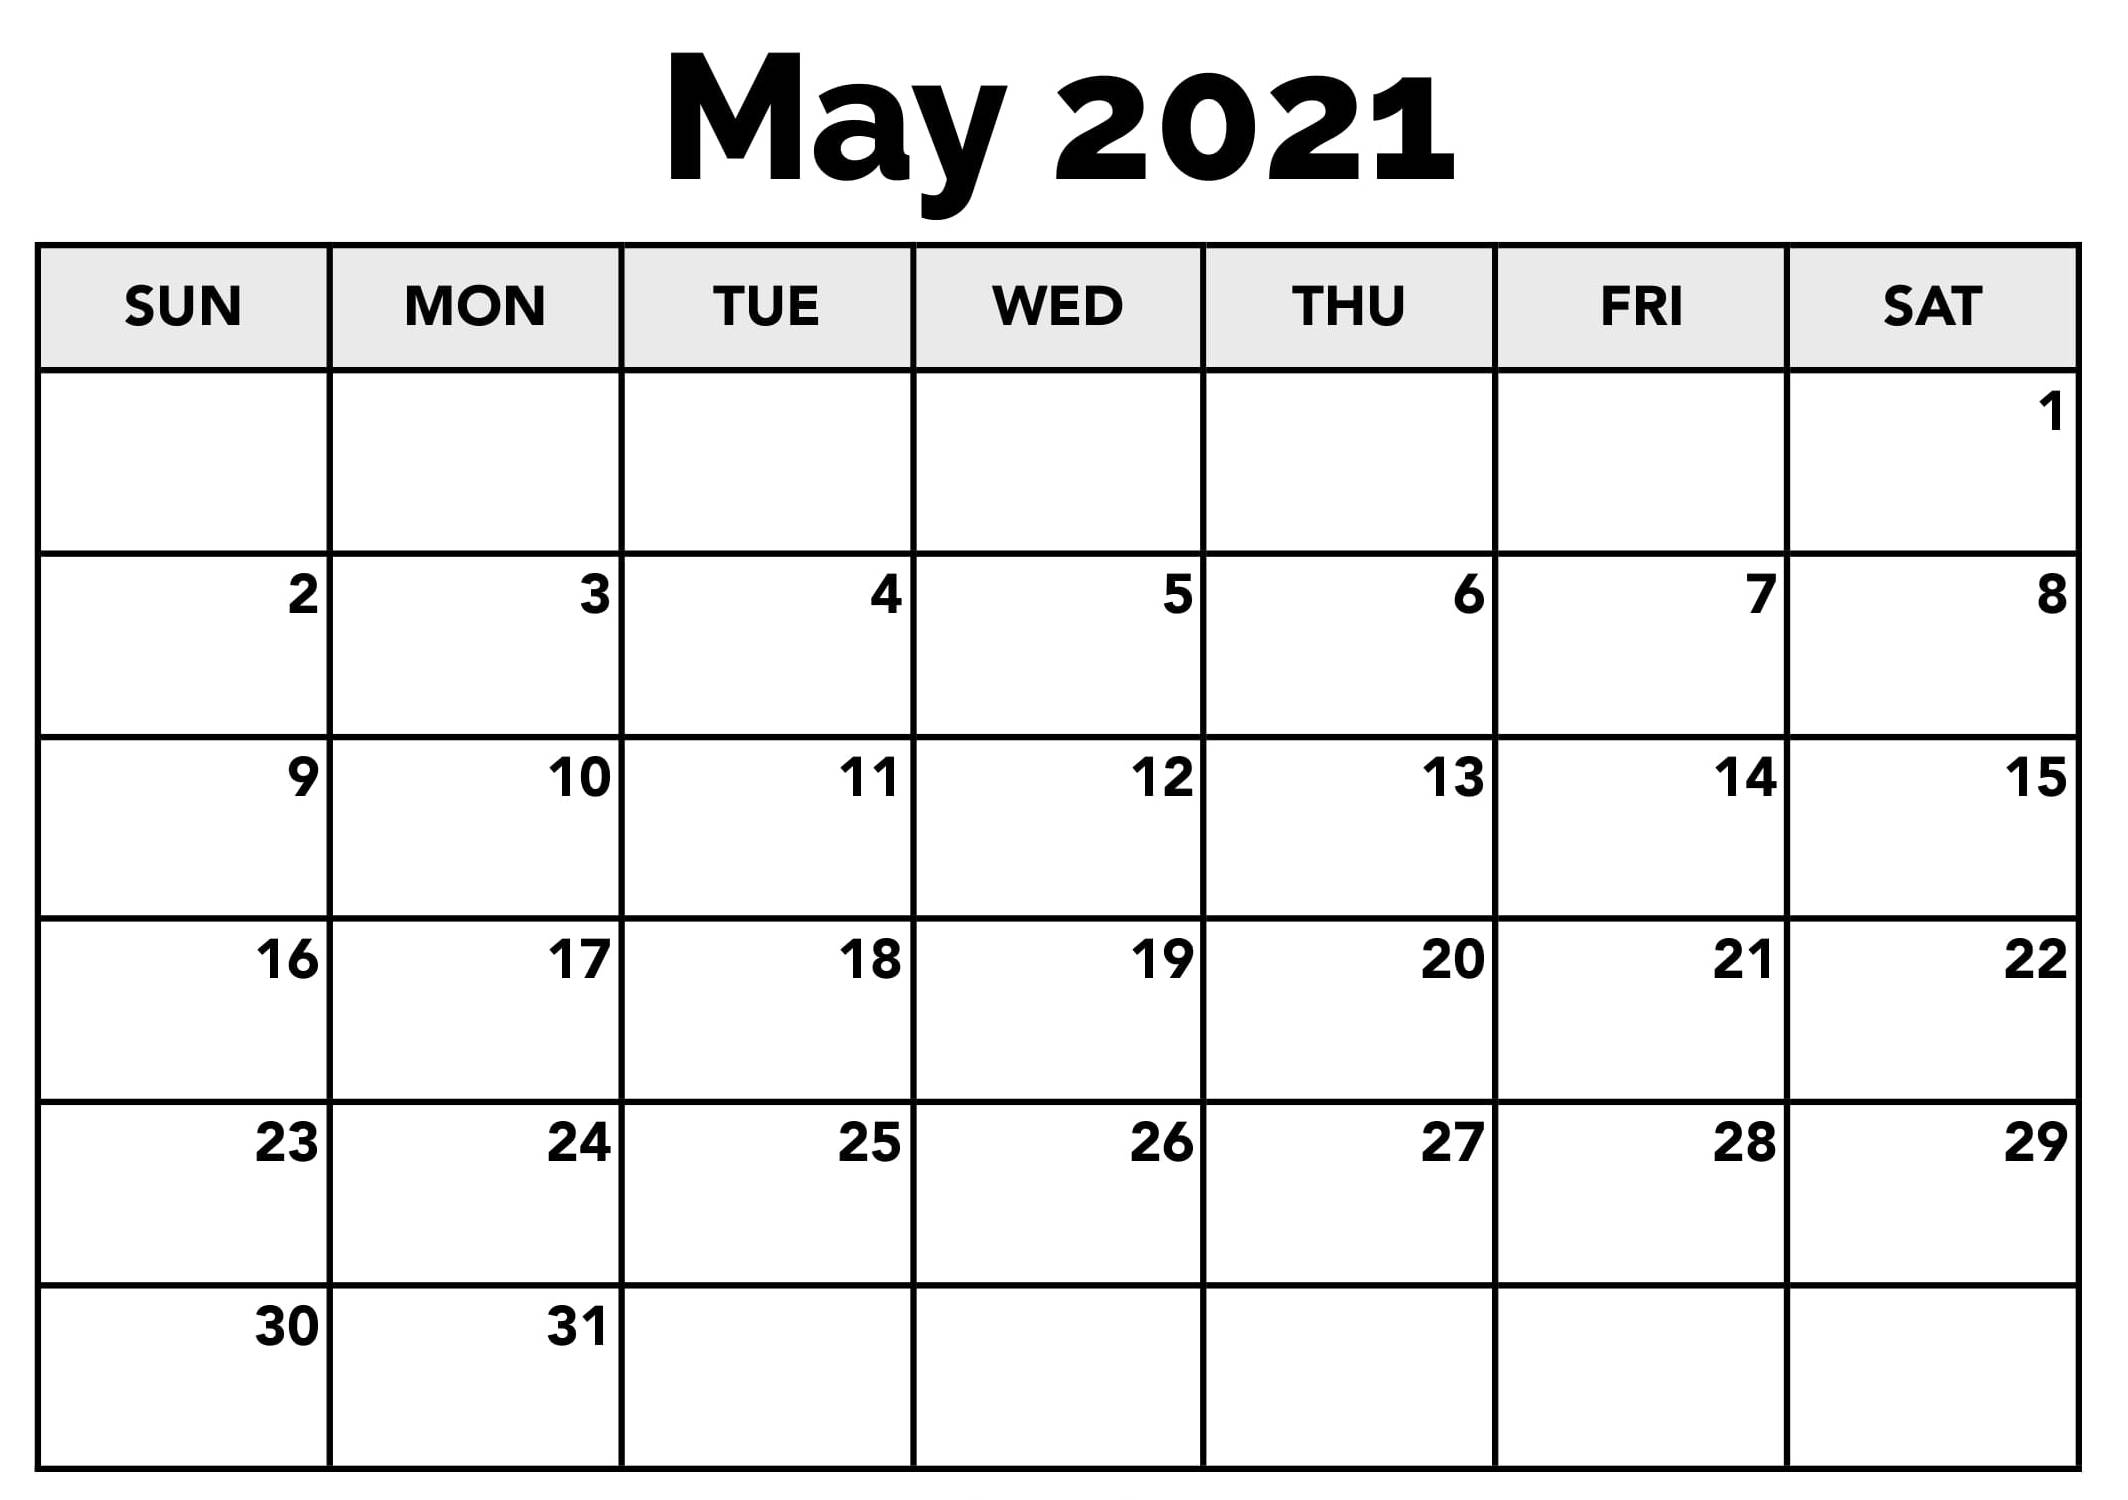 May 2021 Calendar Nz Templates With Holidays - One